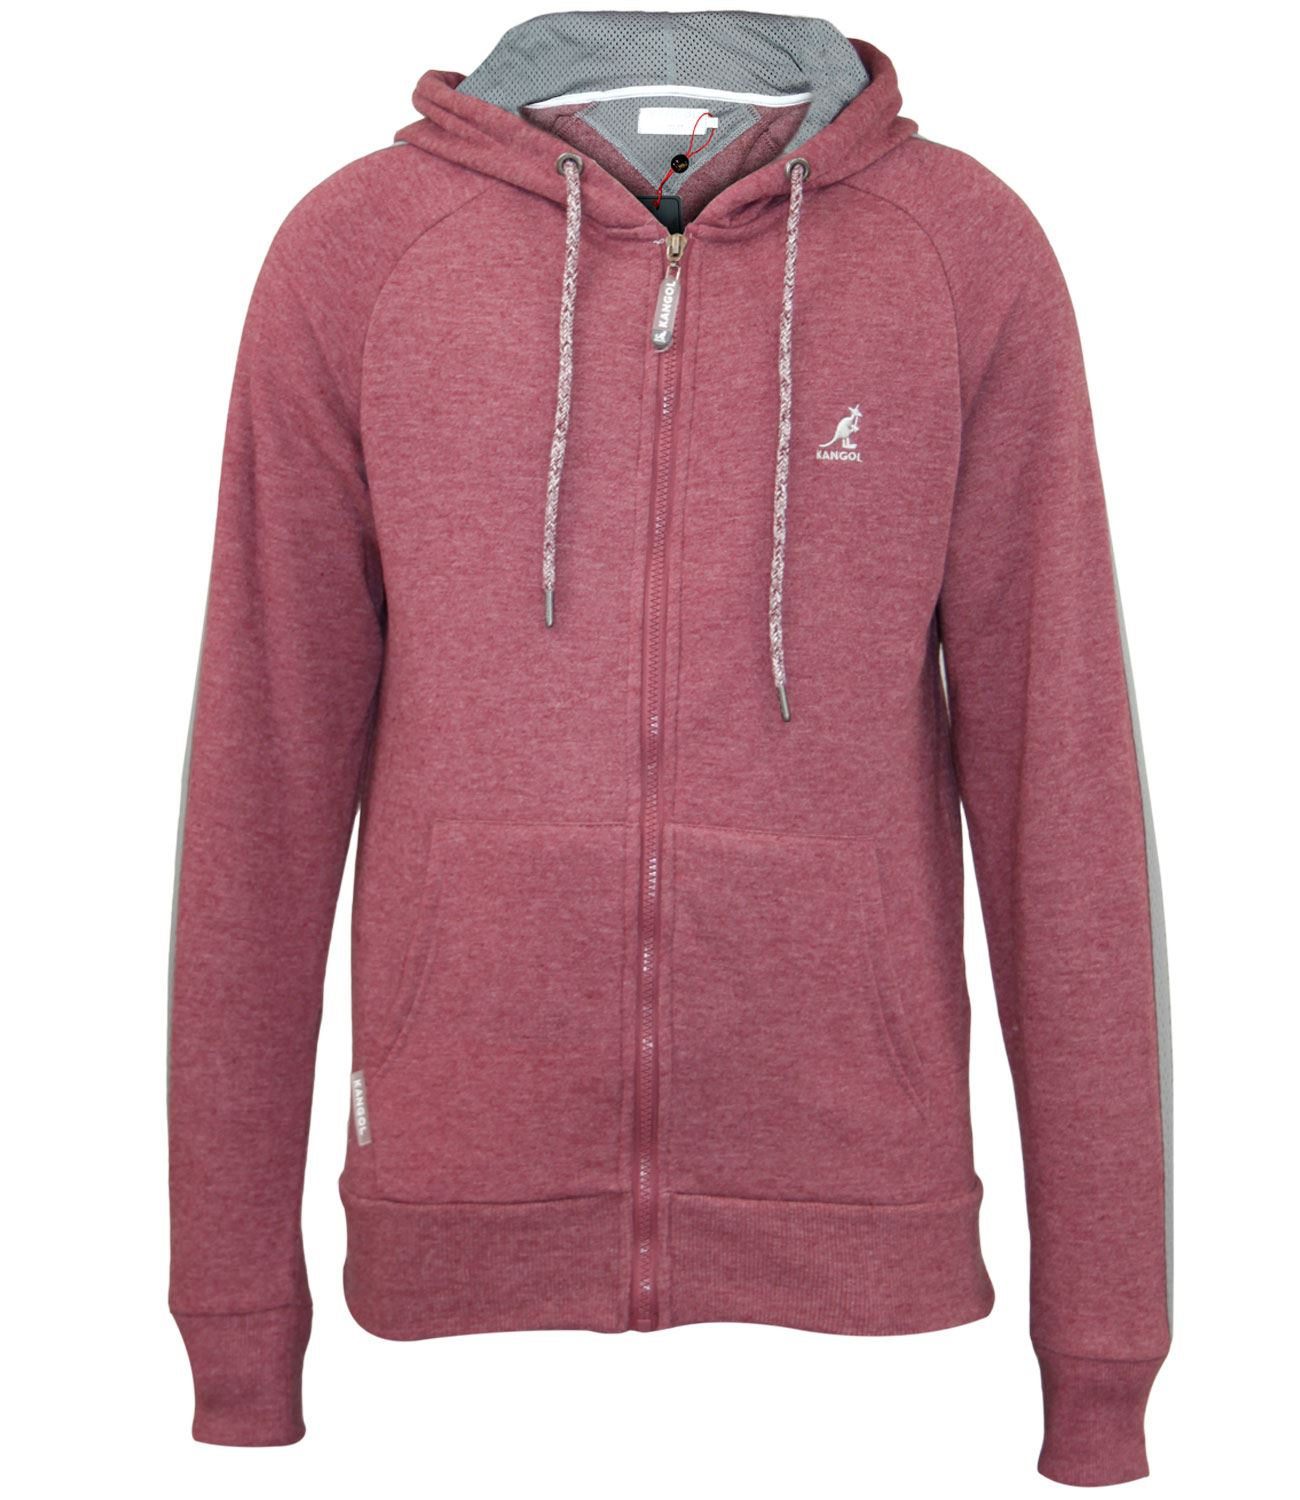 Men's Hoodies. Men's hoodies are an obvious staple, whether between seasons or just for keeping warm during the day. Hoodies at Tillys are on trend, and slimming without sacrificing comfort. You'll find men's hoodies with awesome prints and color blocking.